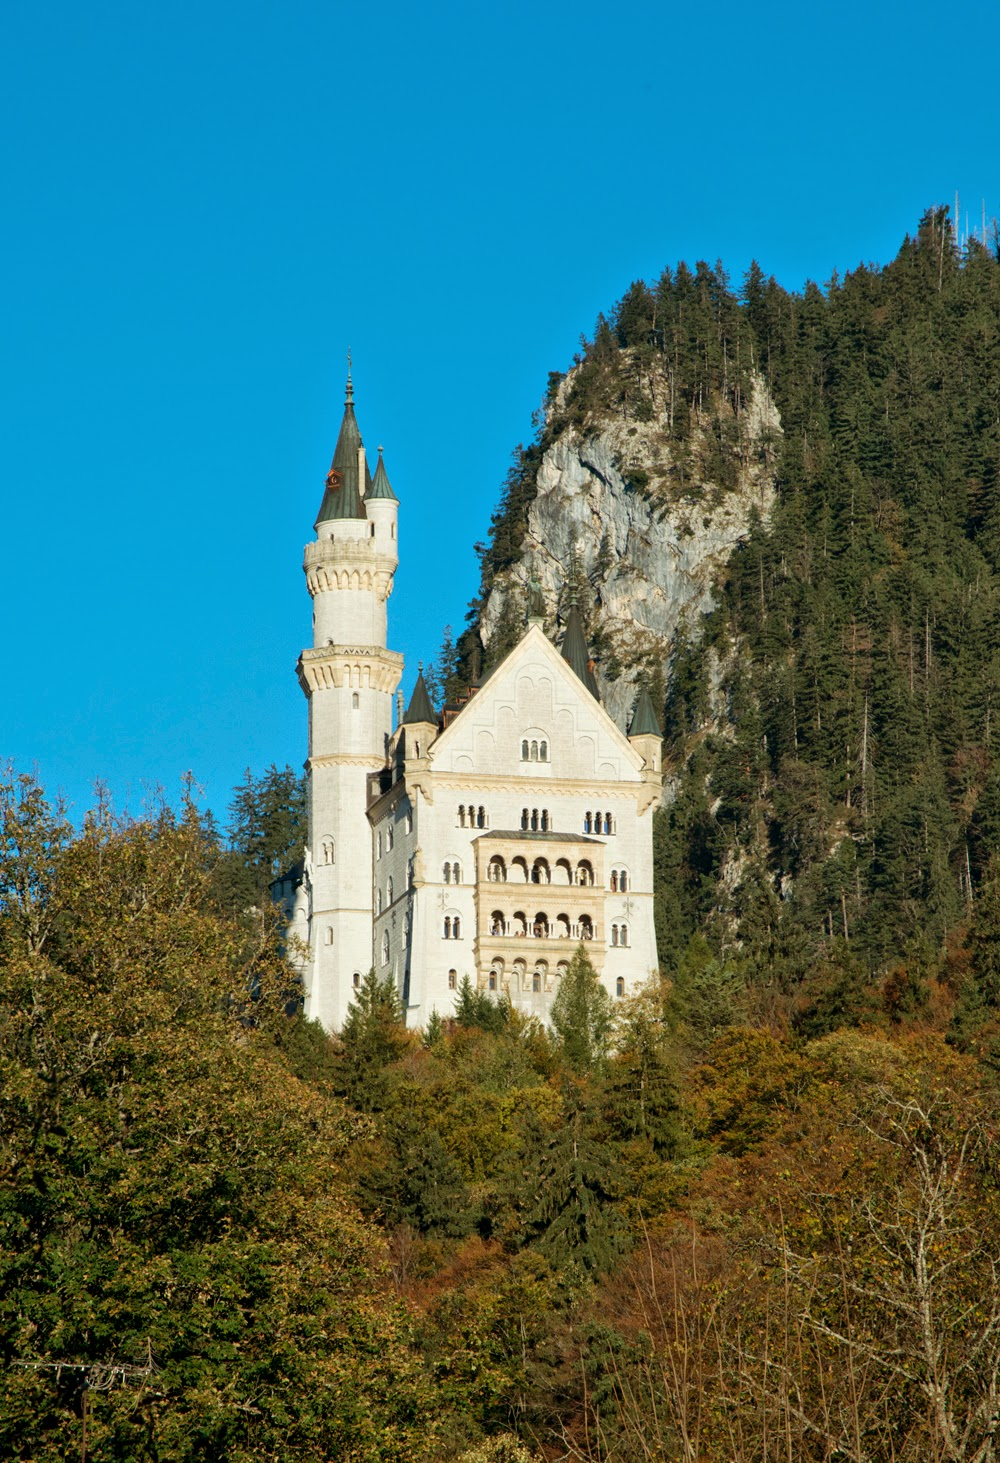 """Mad"" King Ludwig II's Neuschwanstein Castle in the Bavarian Alps, Germany"